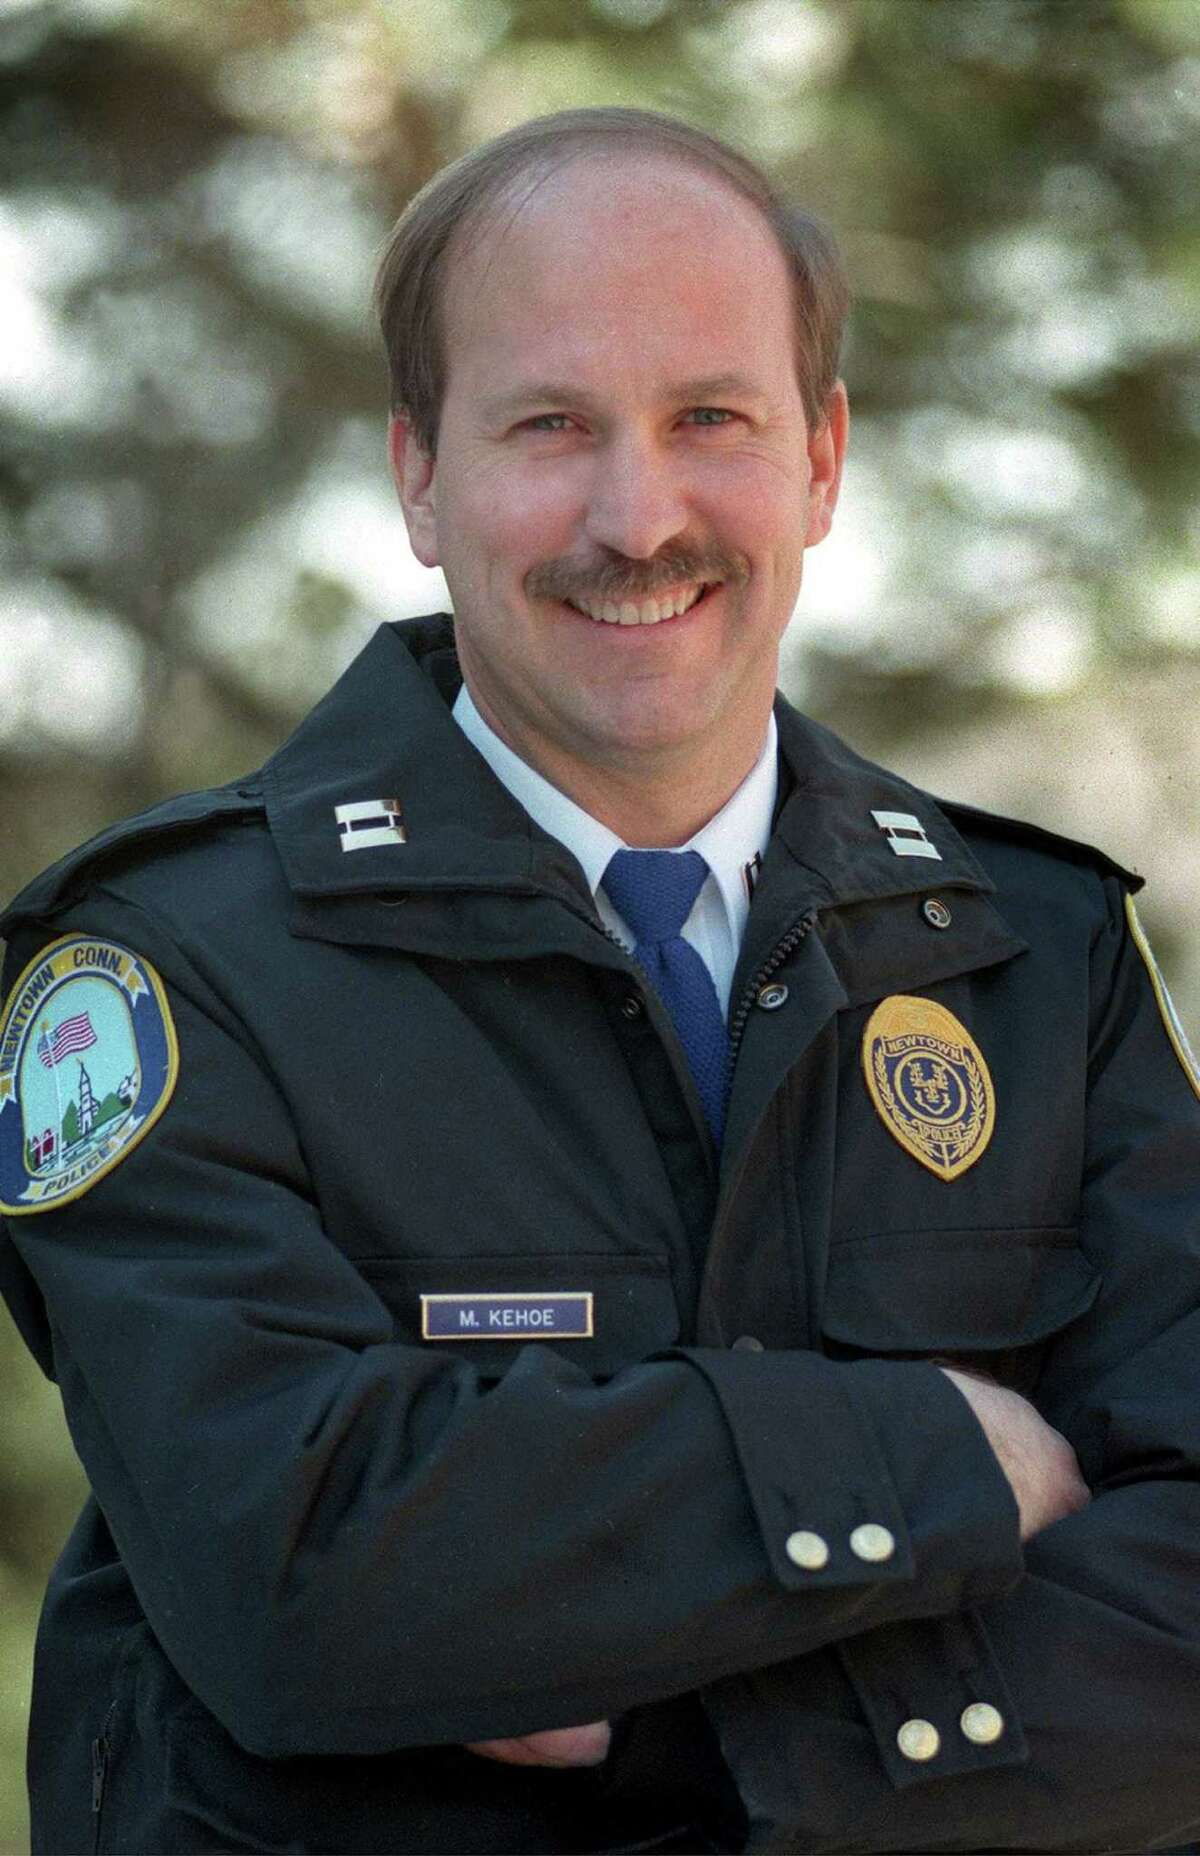 Newtown Police Chief Michael Kehoe.